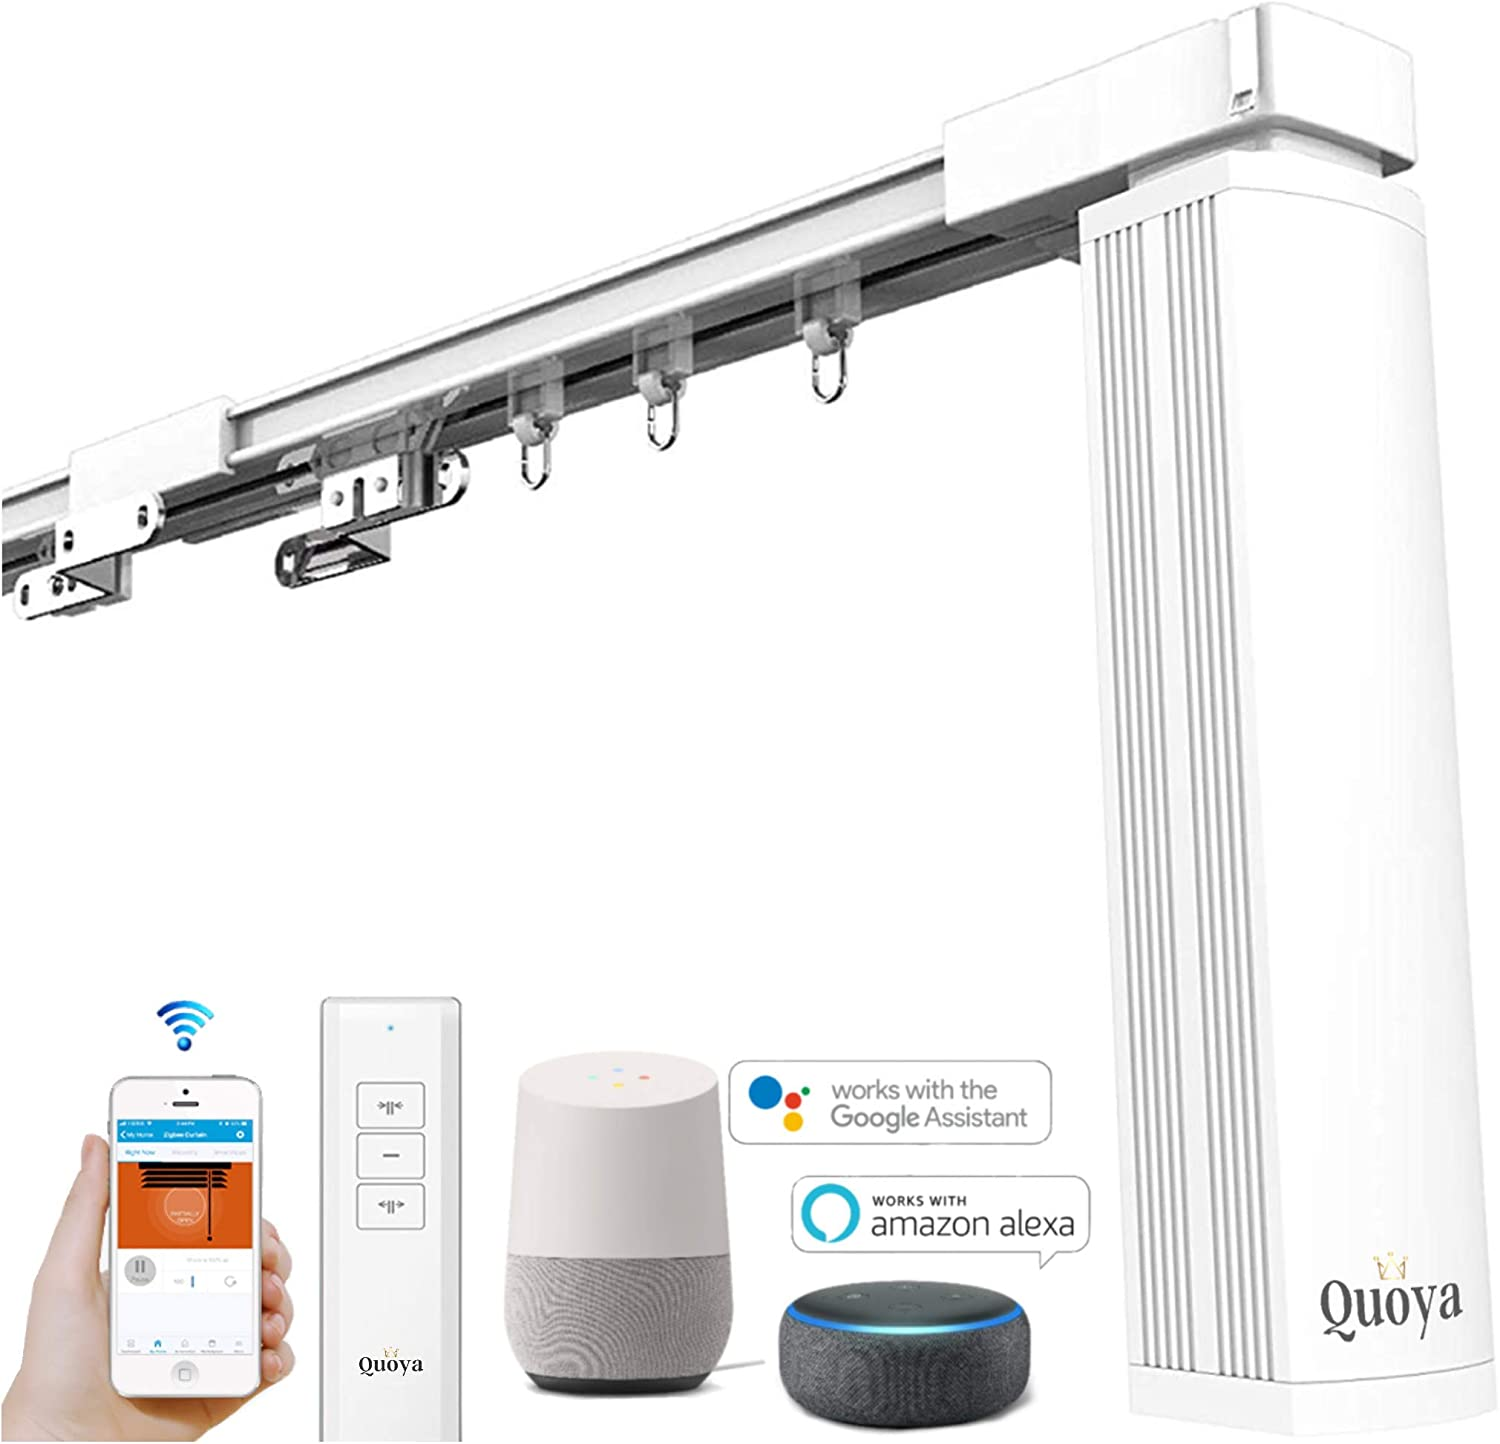 Quoya Smart Curtains System, Electric Curtain Track with Automated Rail?Motorized and Adjustable Tracks/Rod/Pole (up to 5 metres / 196 inches)? WiFi Motor Compatible with Alexa